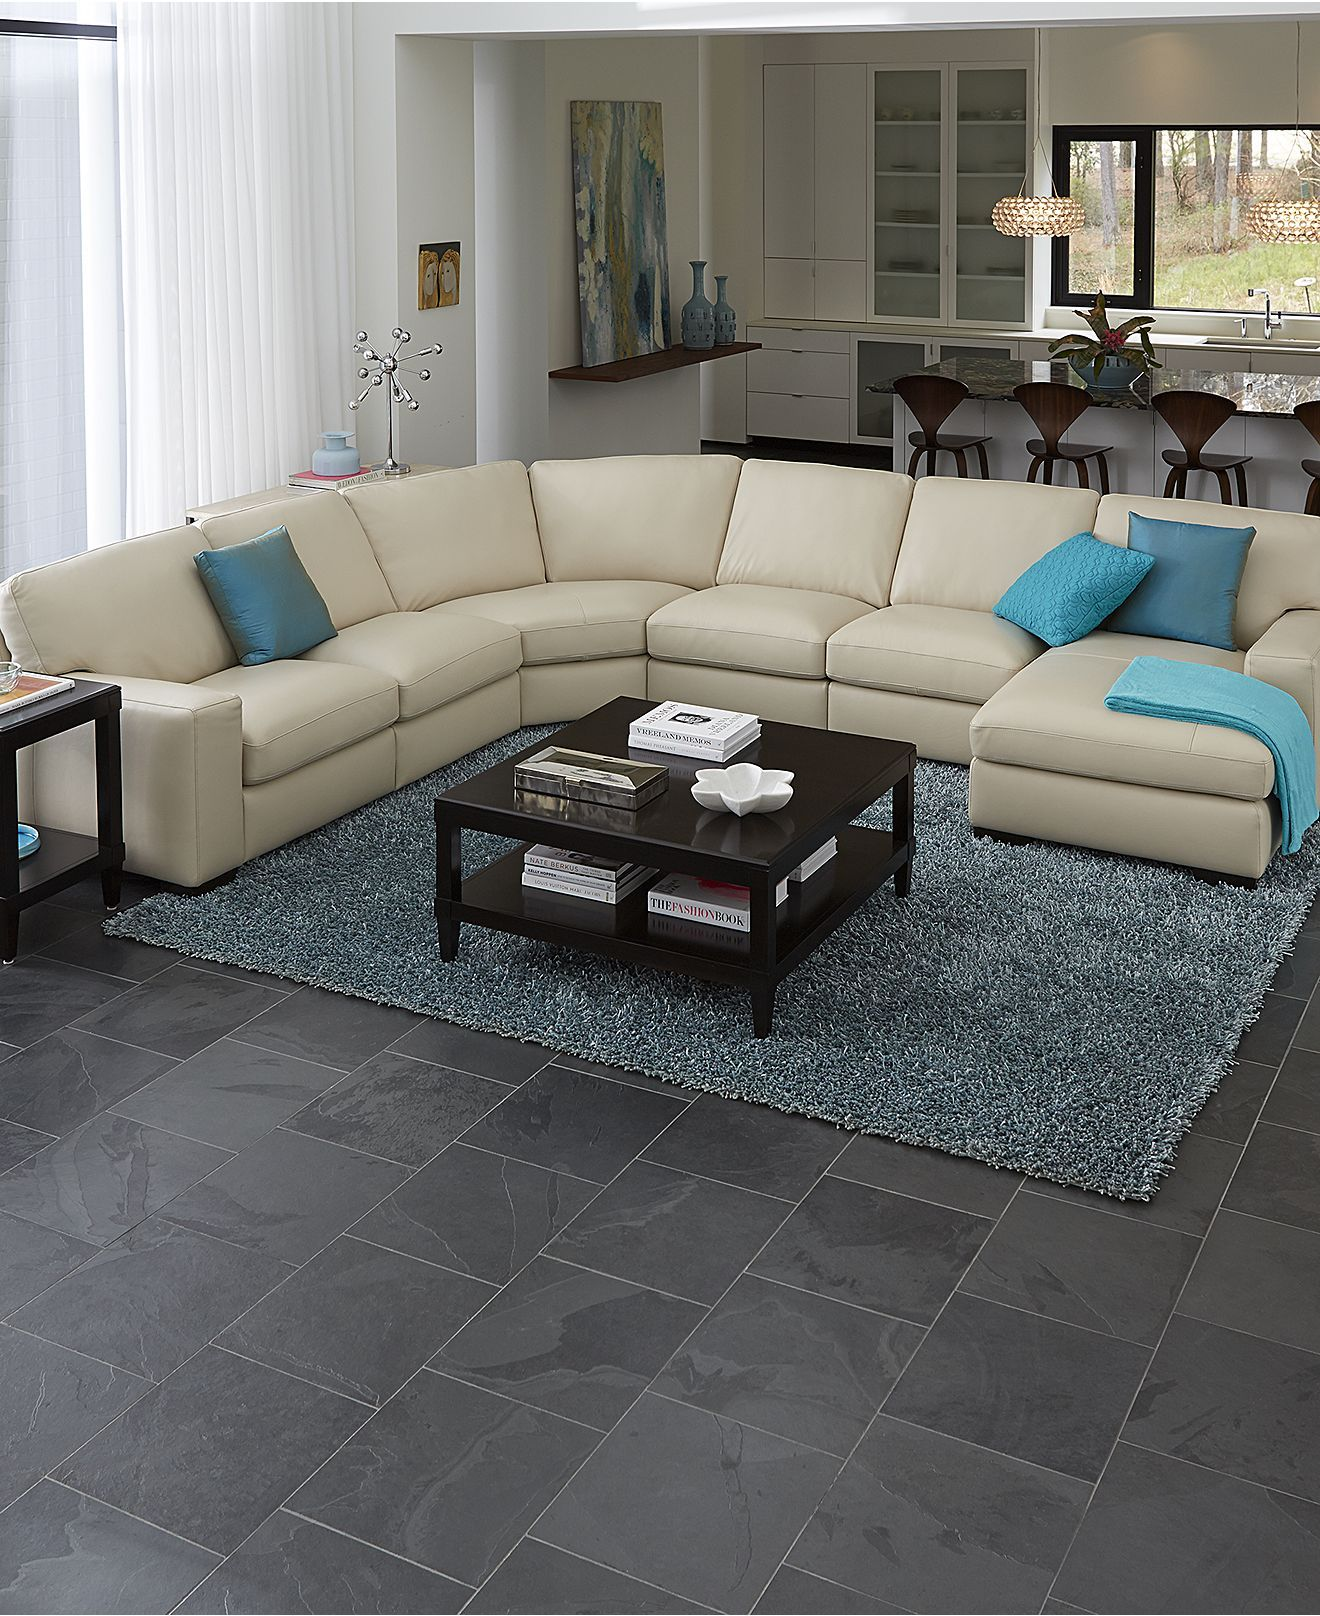 slate modern grey furniture collections living mu leather sectionals edmonton room orion sectional calgary